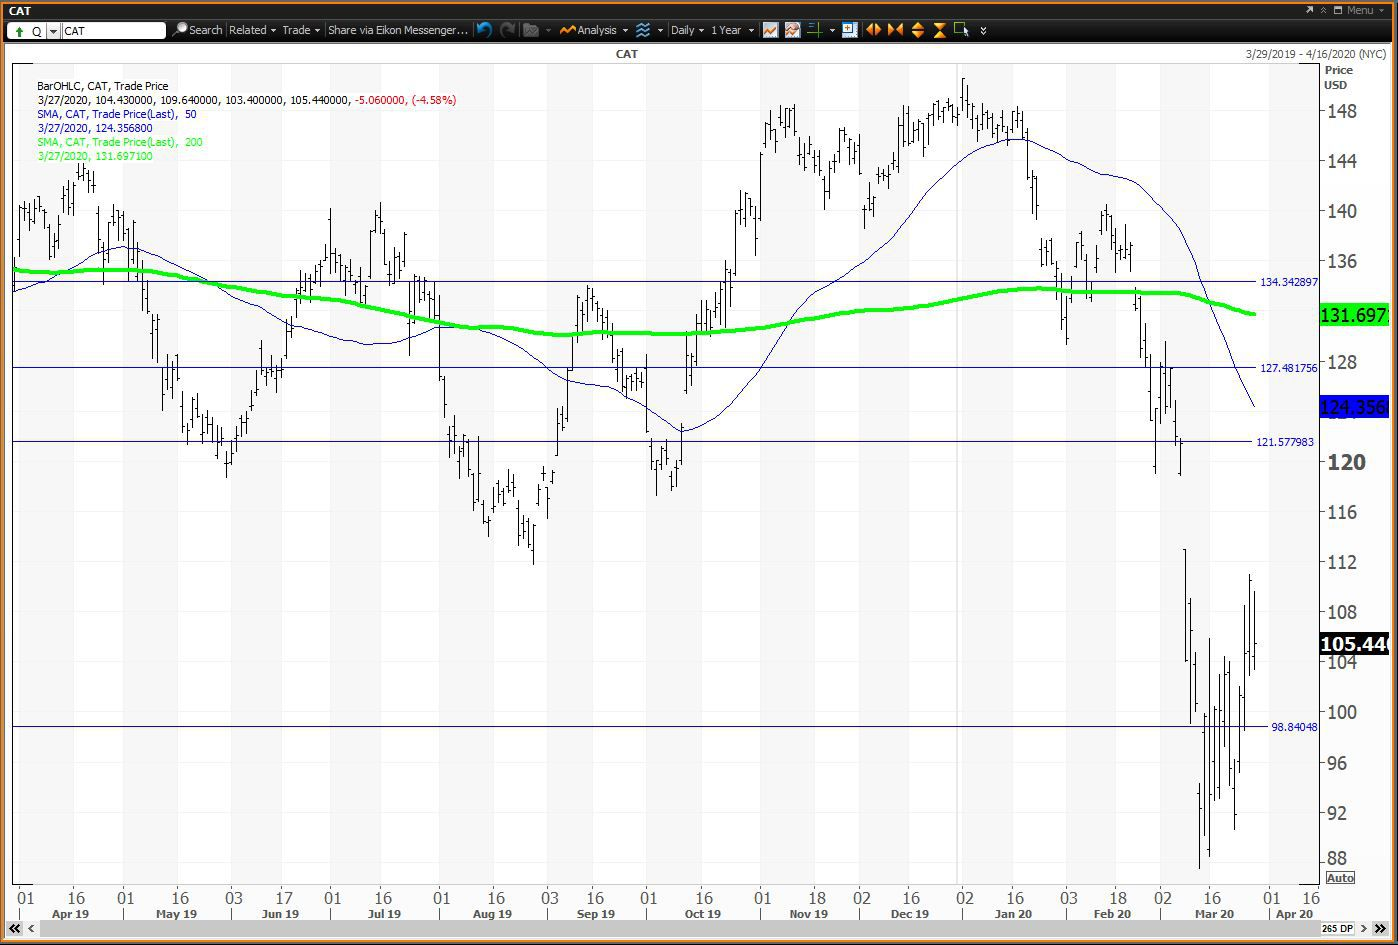 Daily chart showing the share price performance of Caterpillar Inc. (CAT)